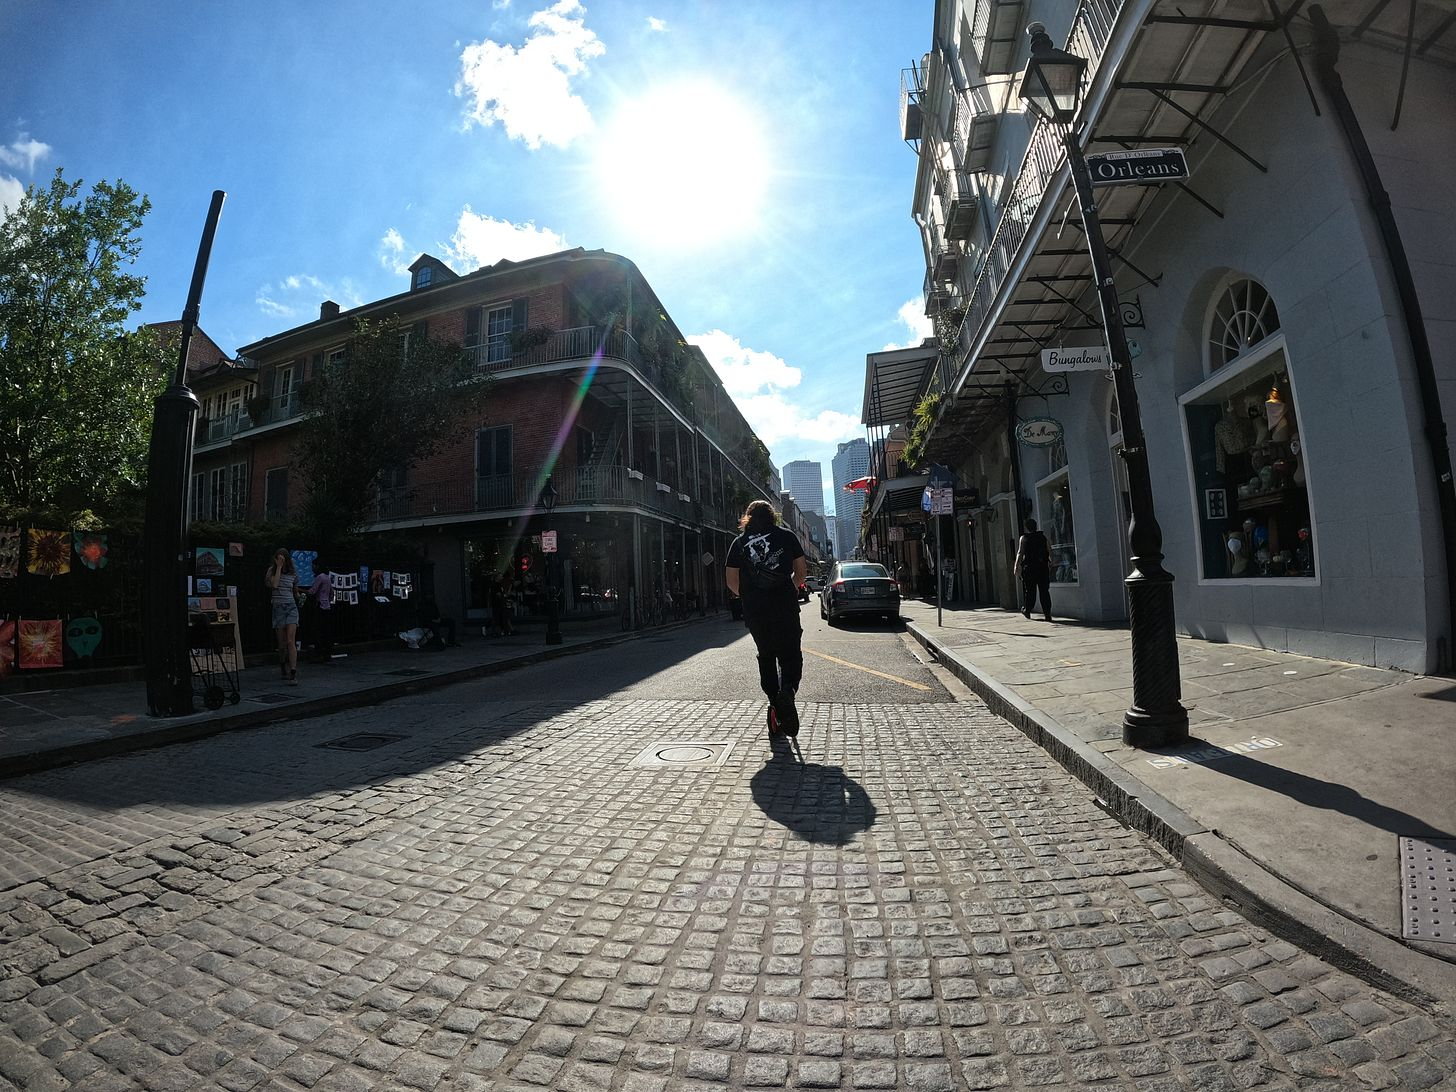 anthony on cobble stone on royal street in new orleans. the sun is bright and you can see a rainbow glare from the sun. Anthony is wearing a stevie ray vaughn shirt and booking it on his scooter in front of kelly